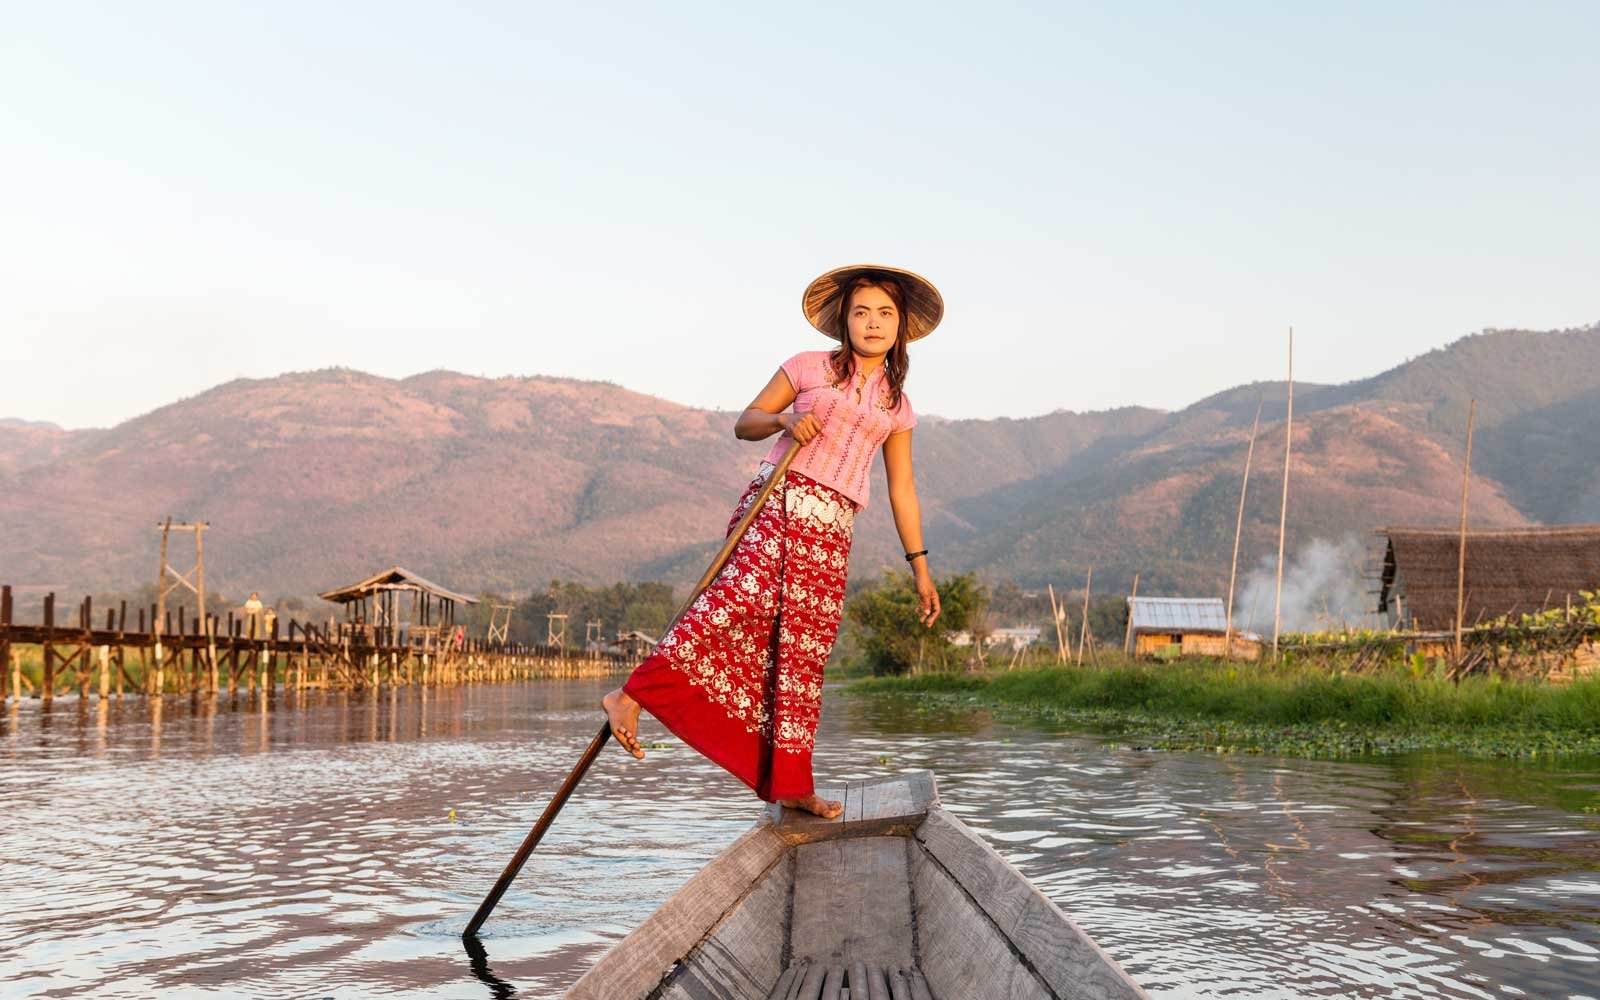 Myanmar, Shan state, Inle lake, woman wearing traditional clothing, rowing boat through water gardens and floating village.